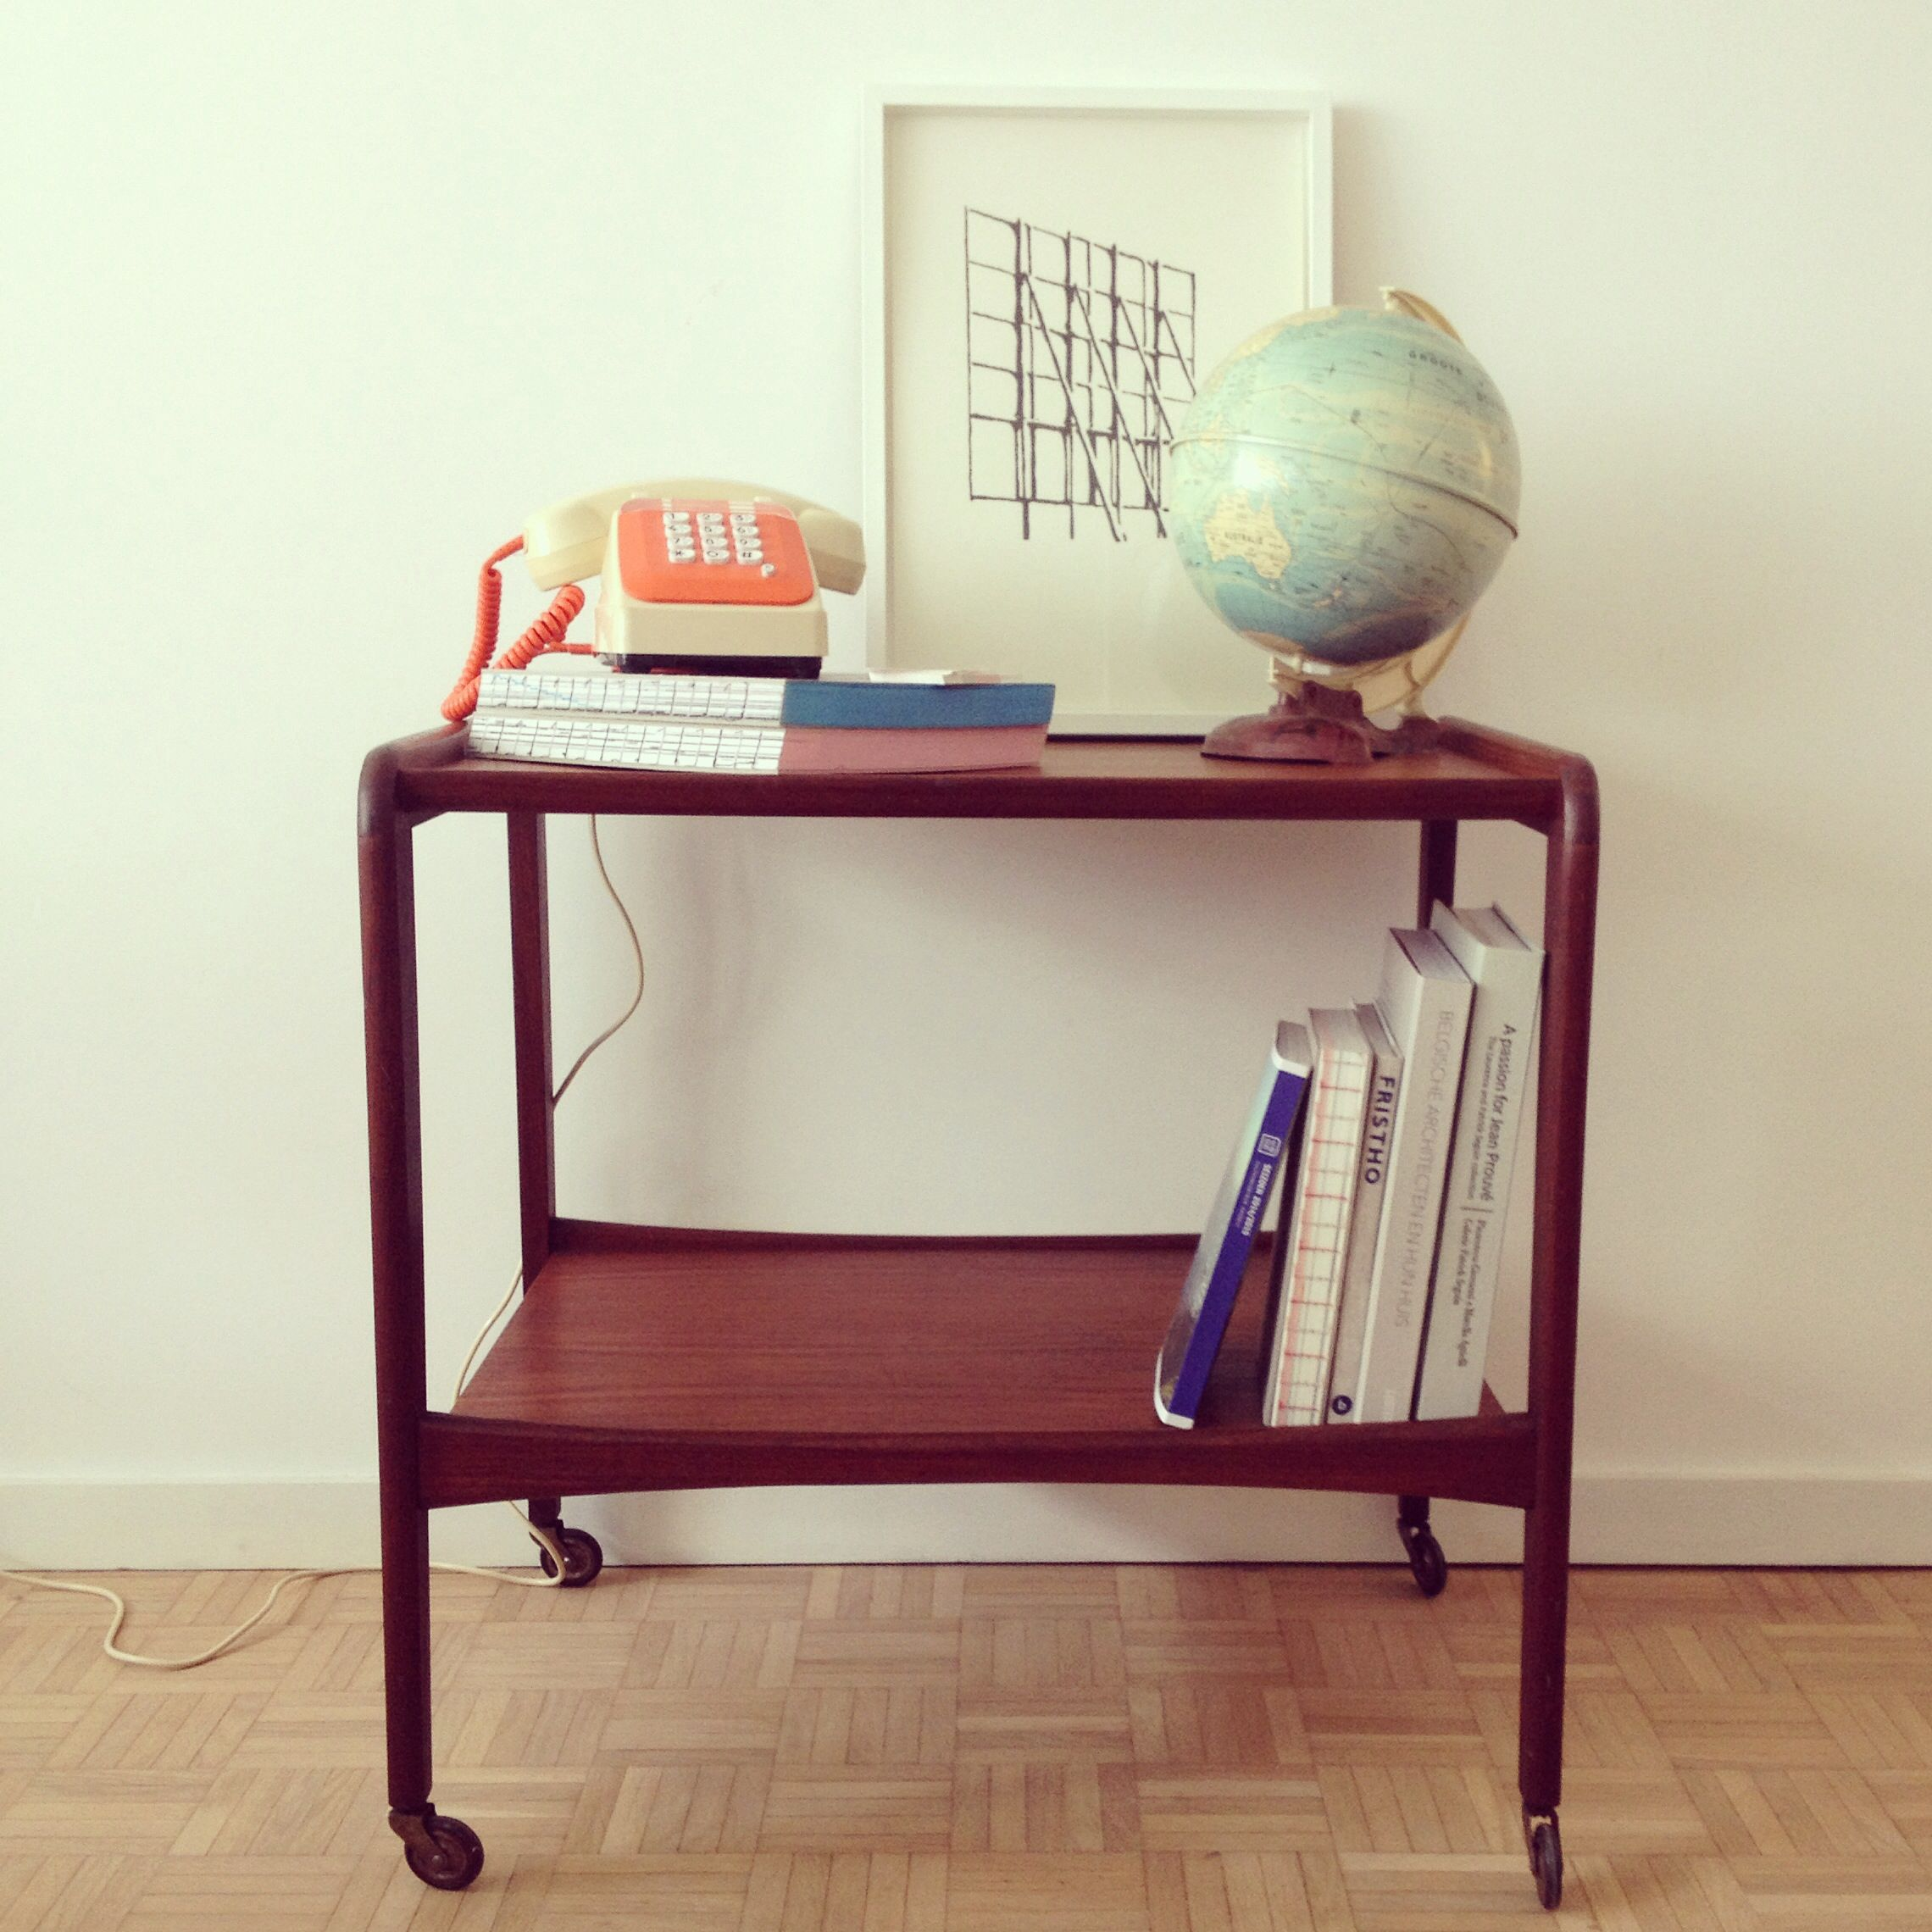 End of hallway ideas  Wooden trolley hallway idea  For the Home  Pinterest  Vintage